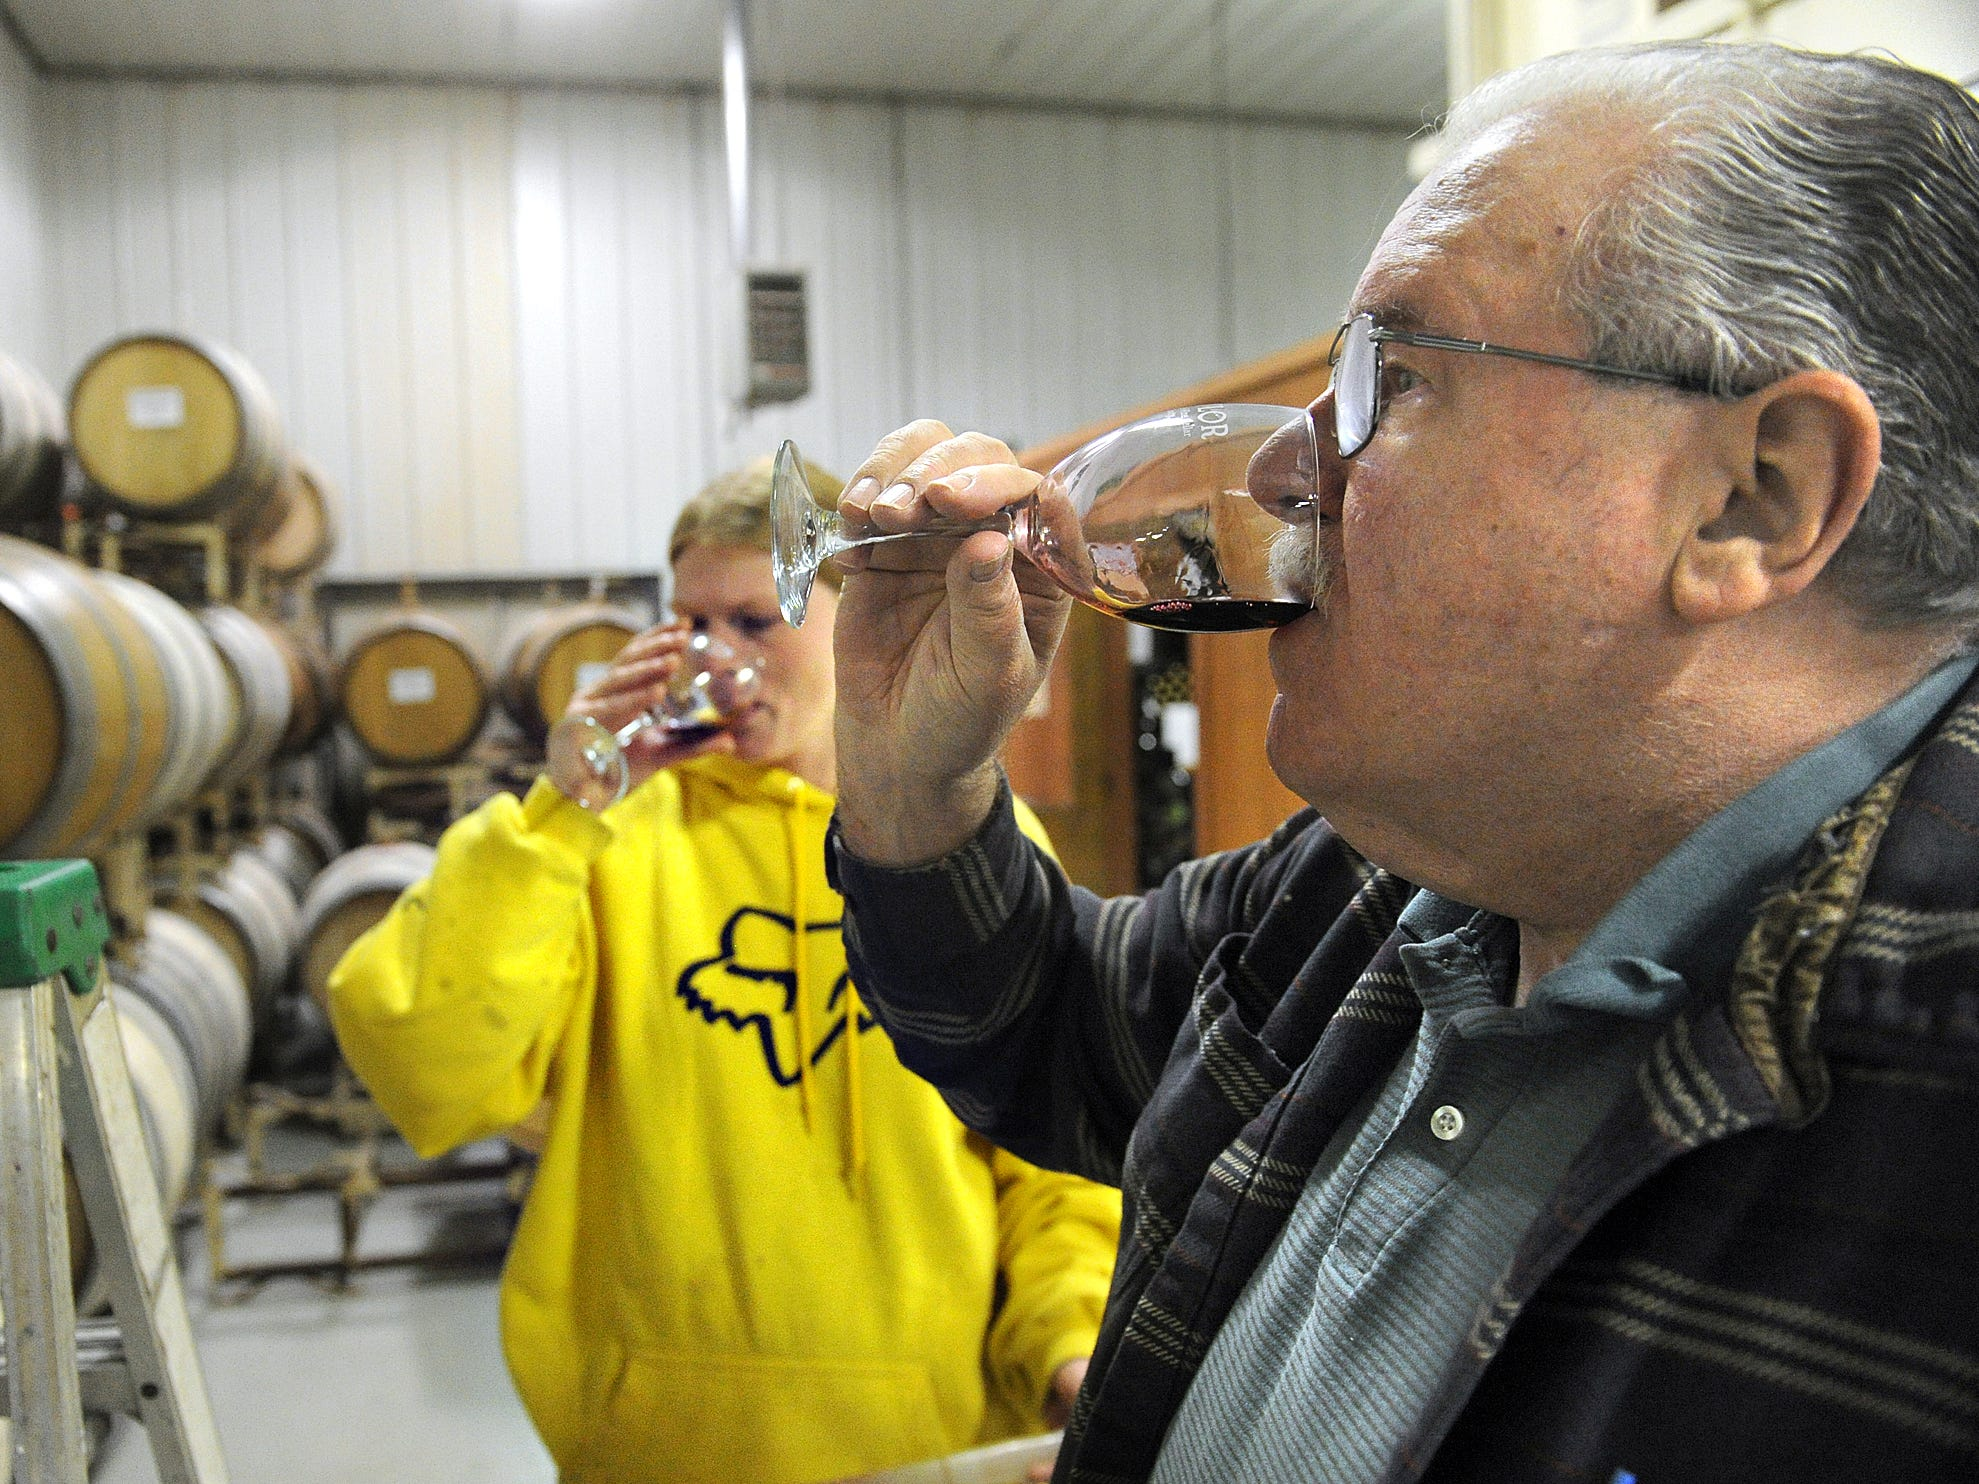 Wine maker Ted Potter and Angel Kellison, the lab technician with Naylor Wine Cellars, sample wine in the Stewartstown Thursday, Feb. 20, 2014.